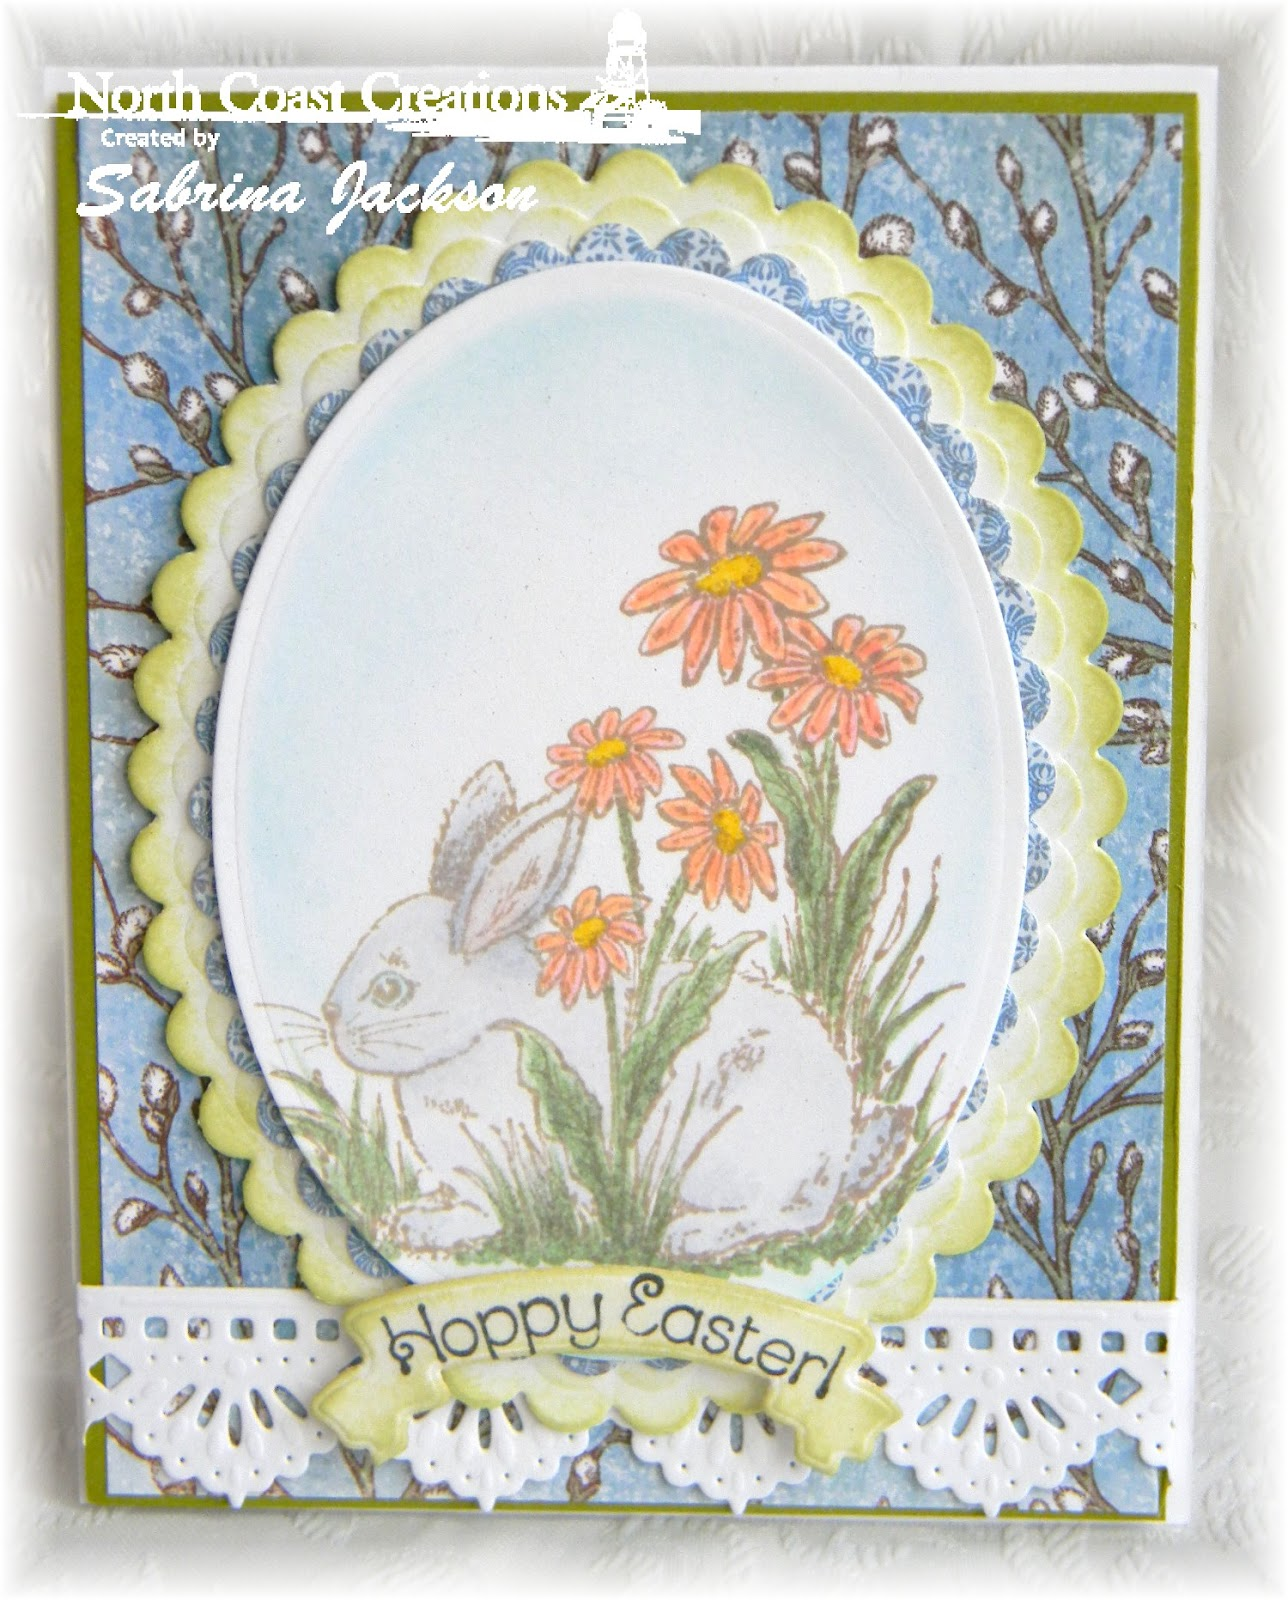 Stamps - North Coast Creations Hoppy Easter, ODBD Blooming Garden Paper Collection, ODBD Custom Beautiful Borders Dies,  ODBD Bird Cage and Banner Dies